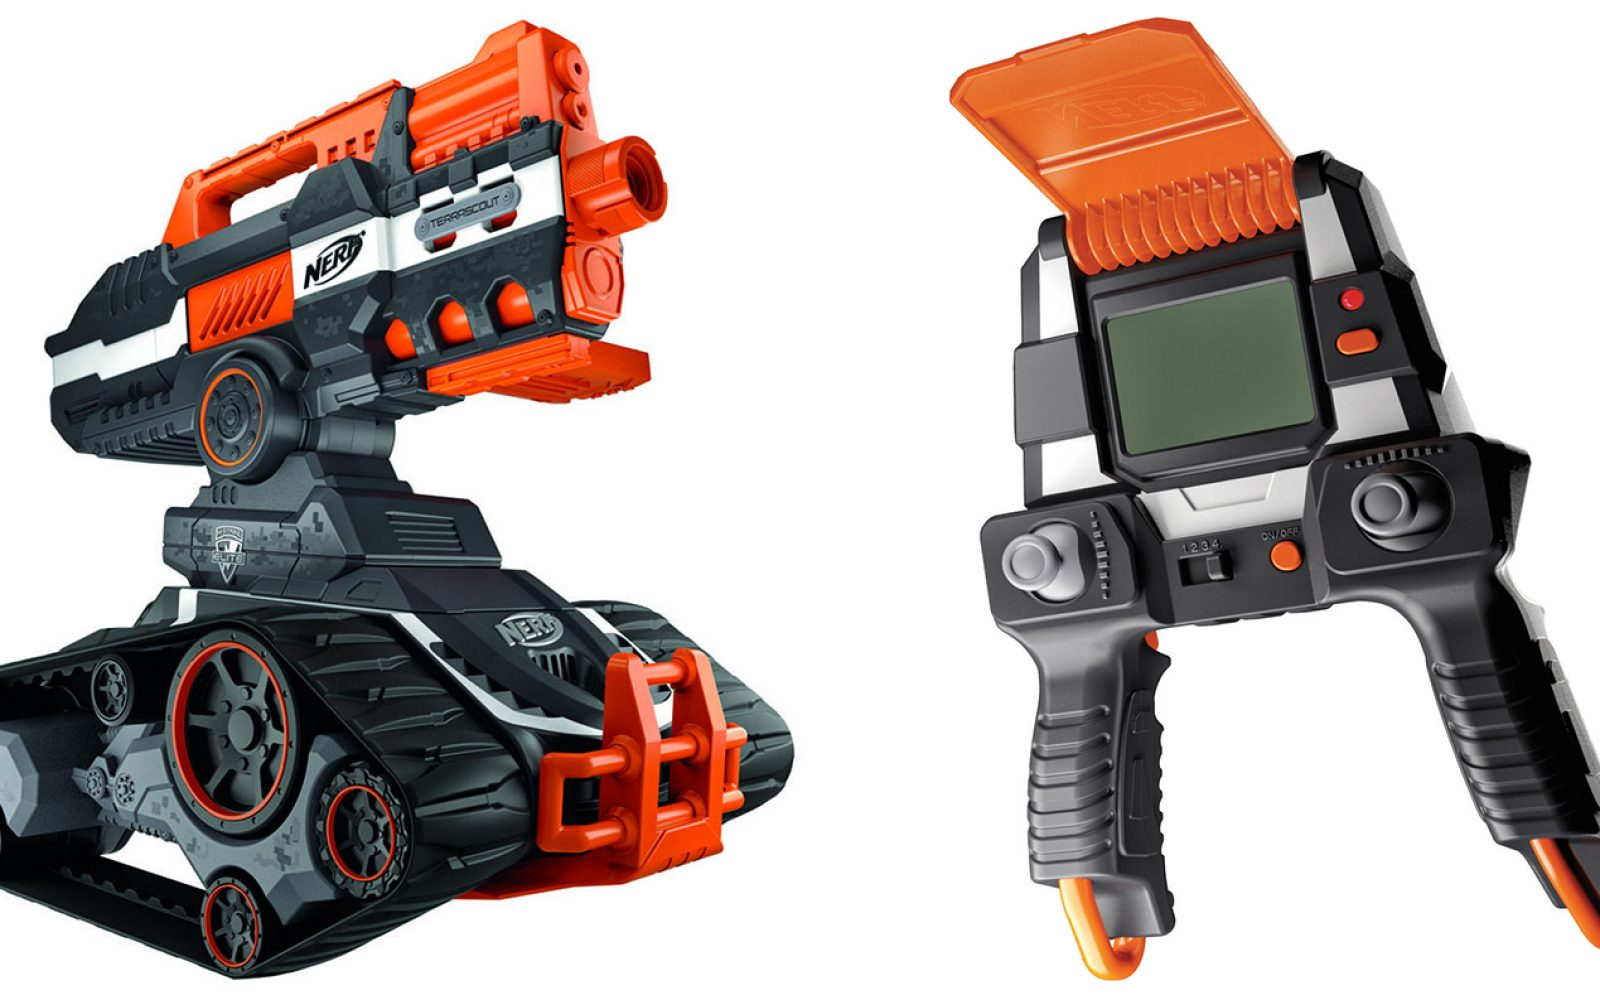 NERF's upcoming Terrascout RC Drone Blaster is going to be a